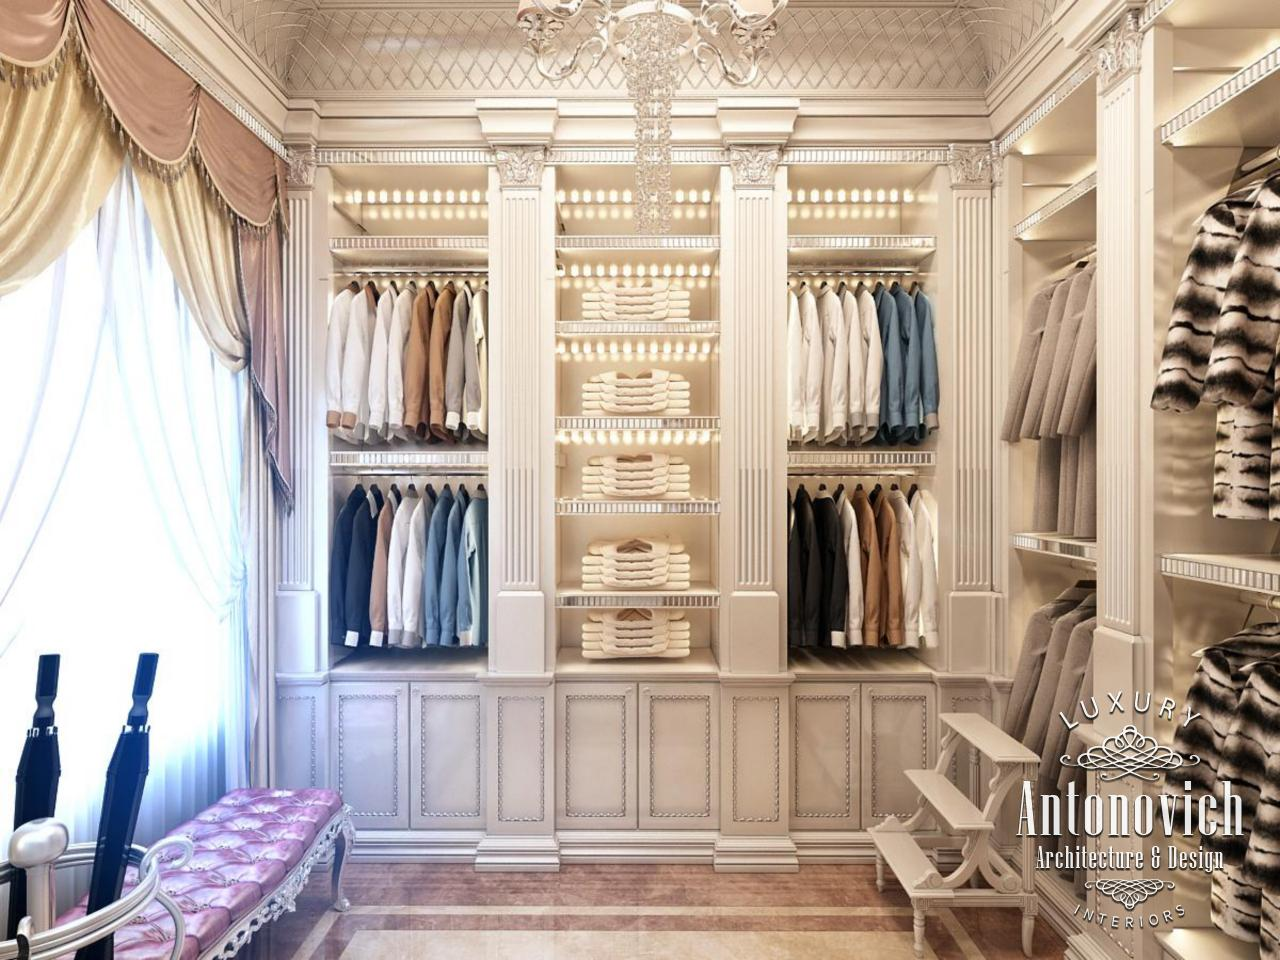 Custom Dressing Room Today Is Based On The Use Of New Technologies Which Are Particularly Related To A Method Illumination And Modern Storage Systems